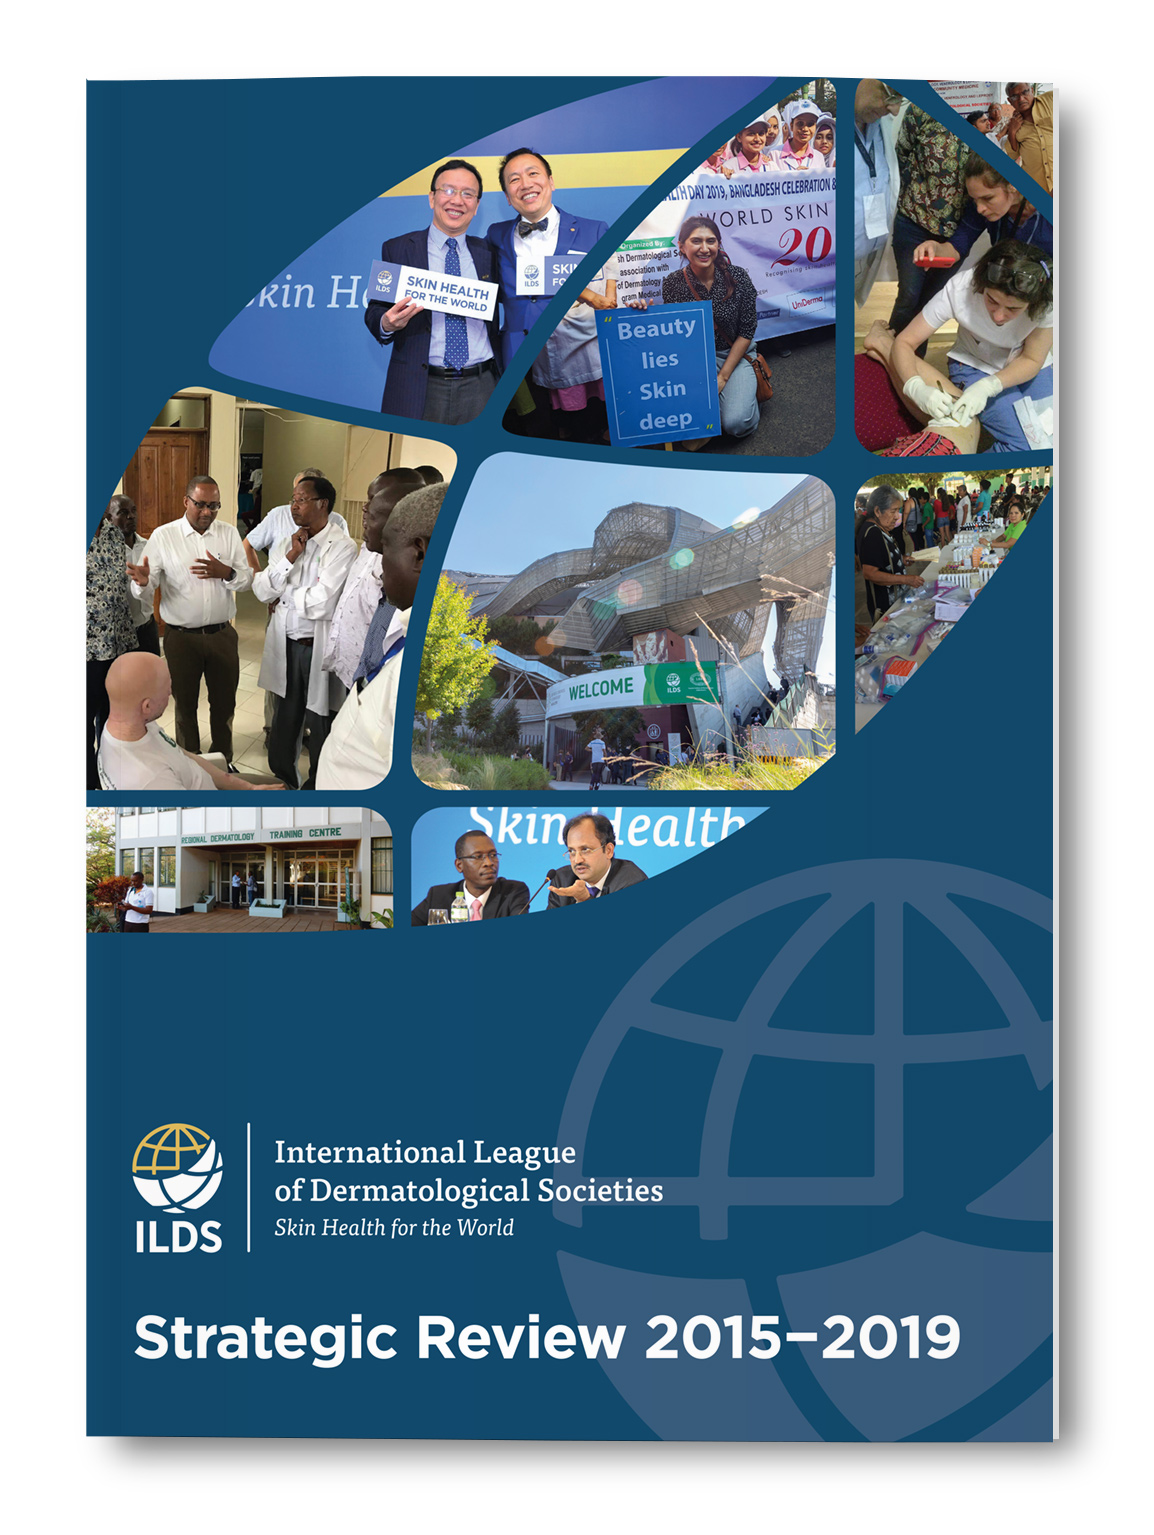 ILDS Strategic Review 2015-2019